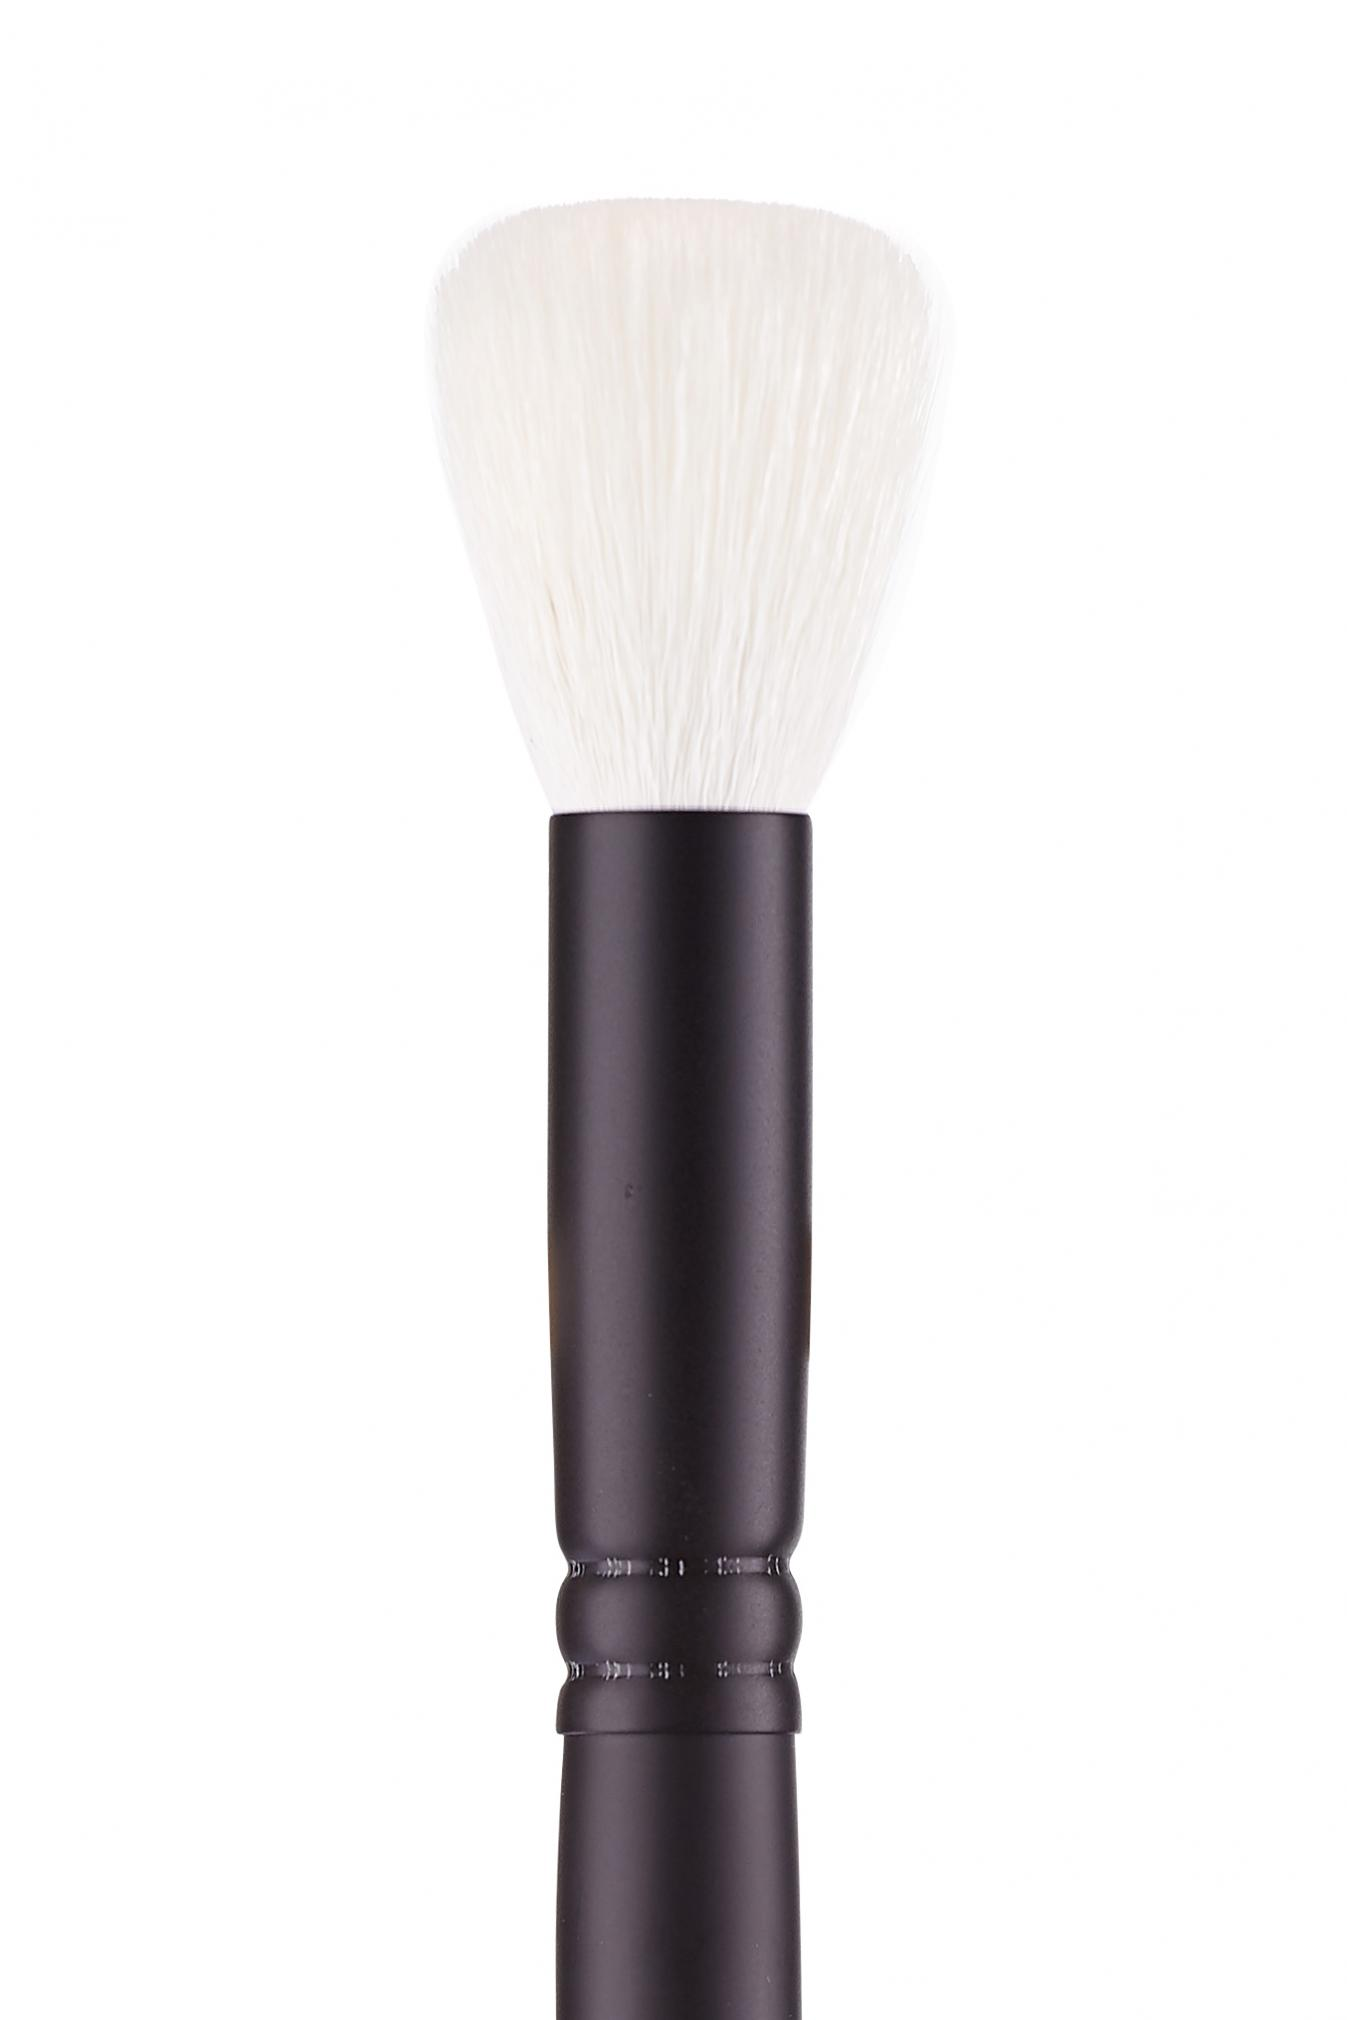 Bristles Powder brush and highlighter Annbeauty Katakana S23